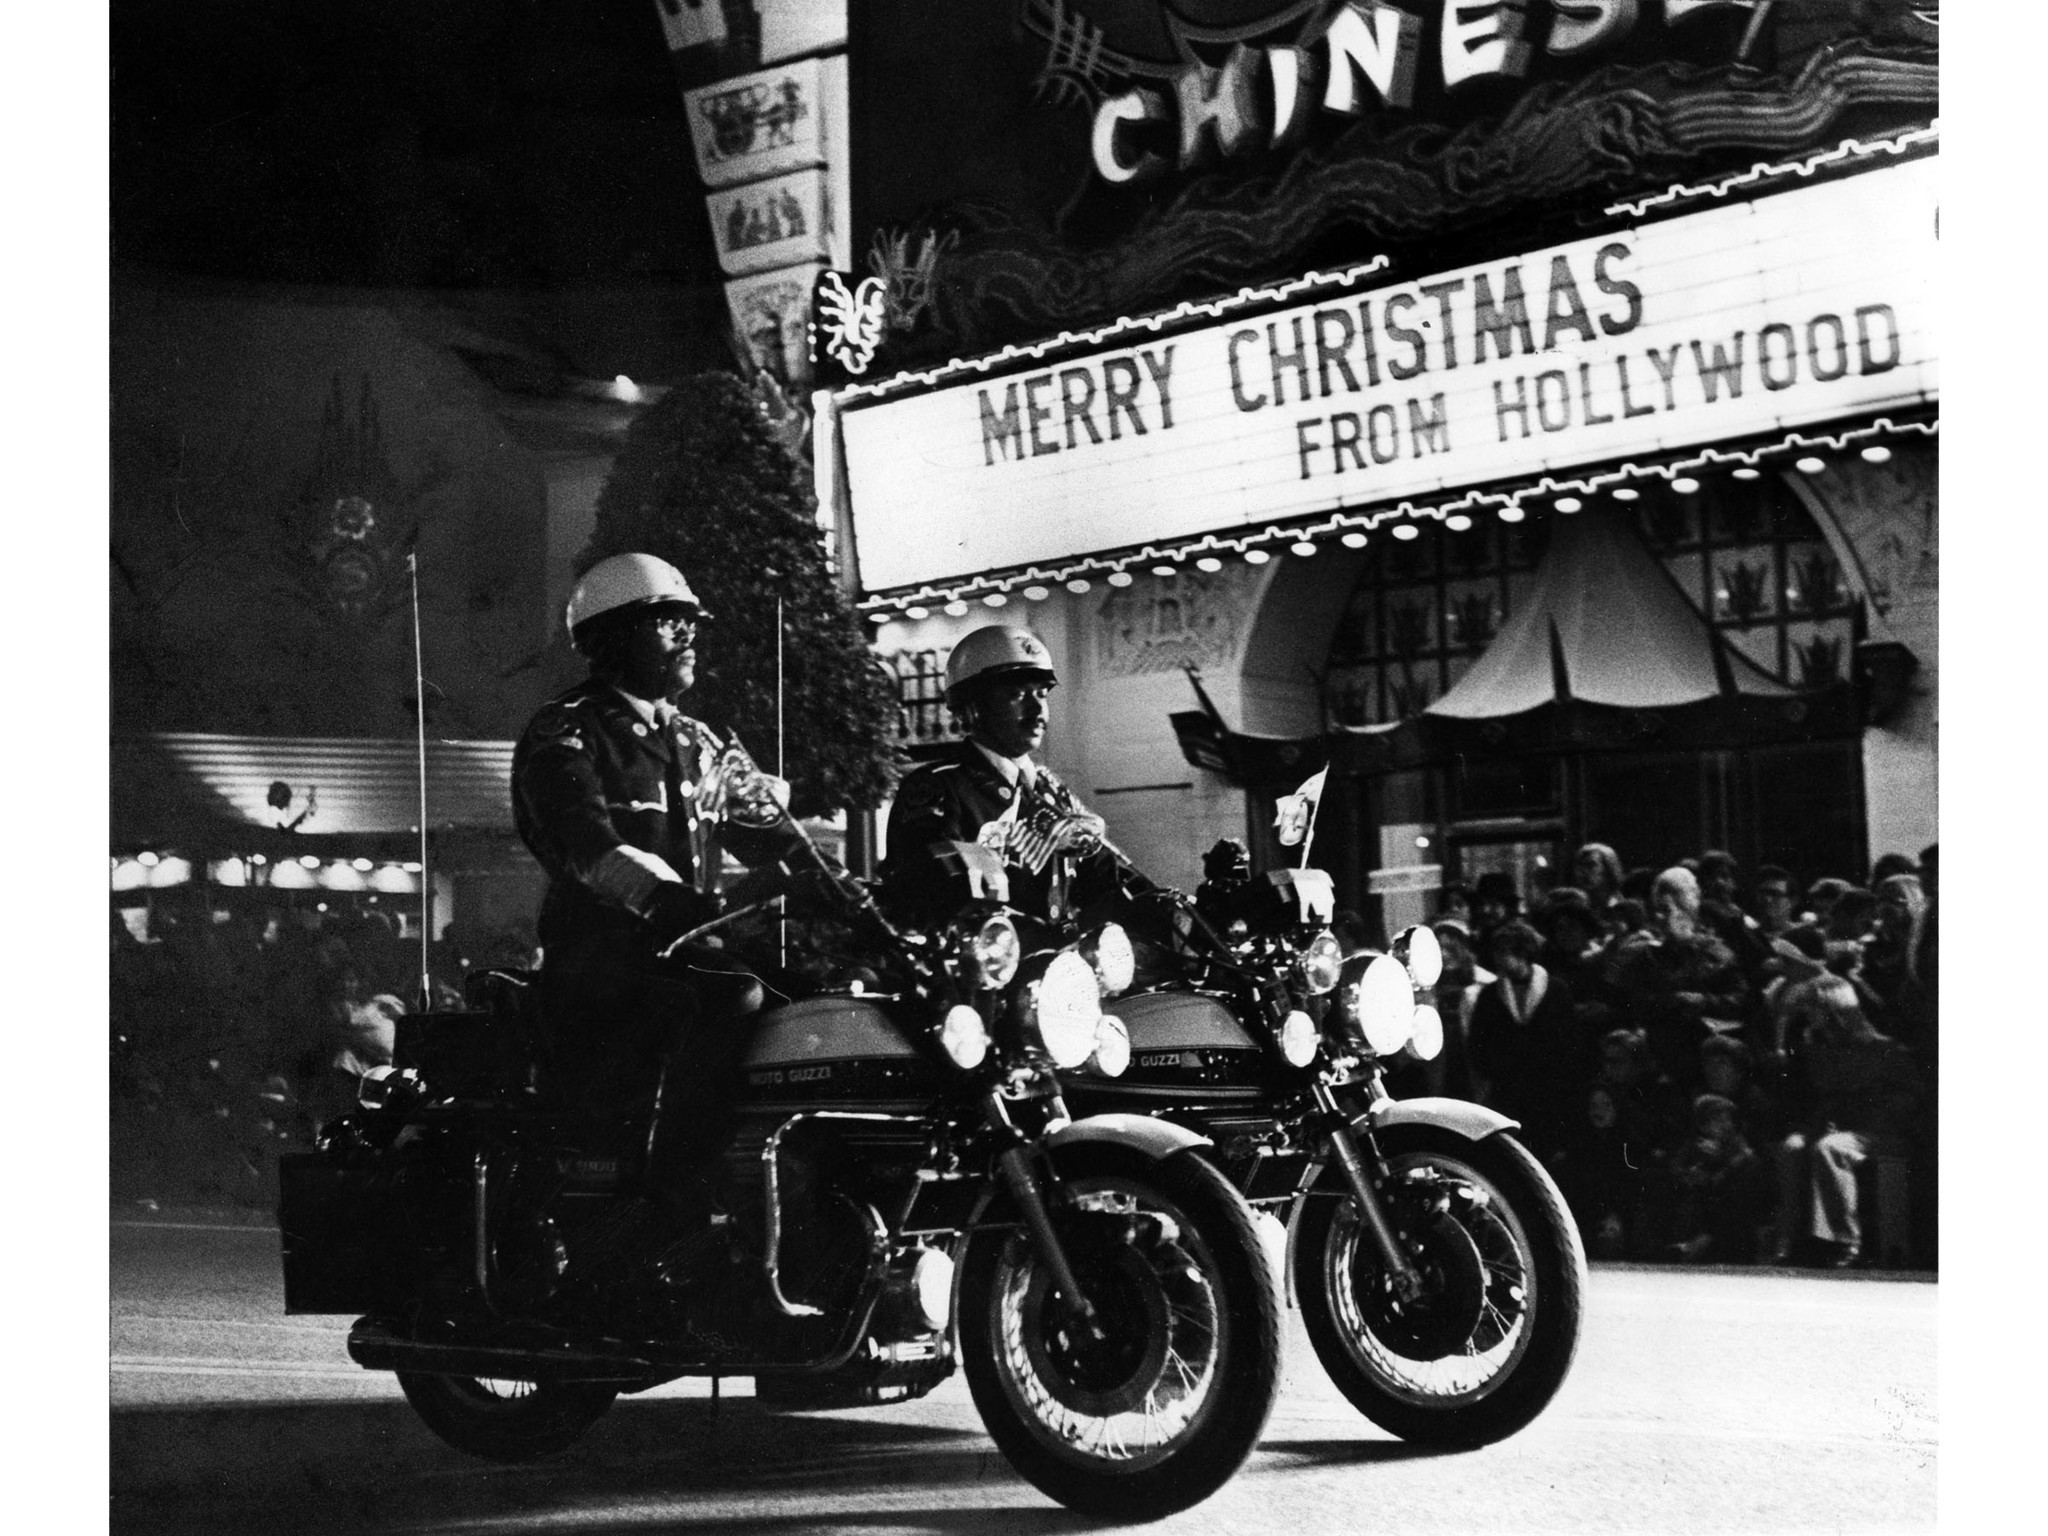 Nov. 28, 1976: Members of the Los Angeles Police Department motorcycle drill team lead the Santa Cla